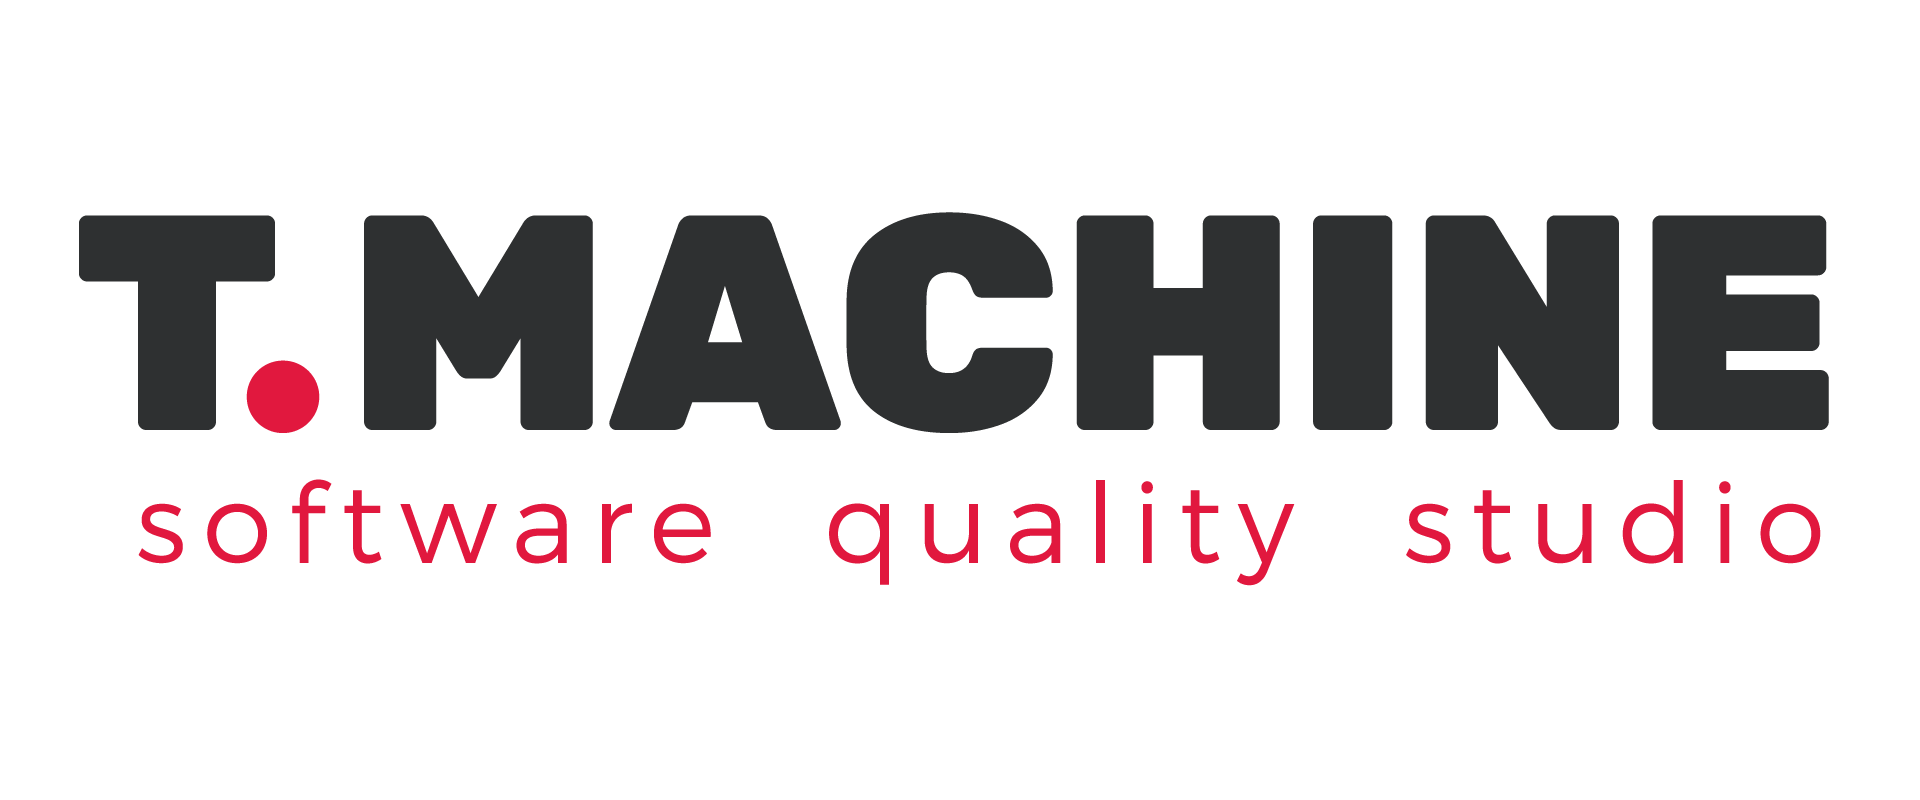 T-MACHINE-logo